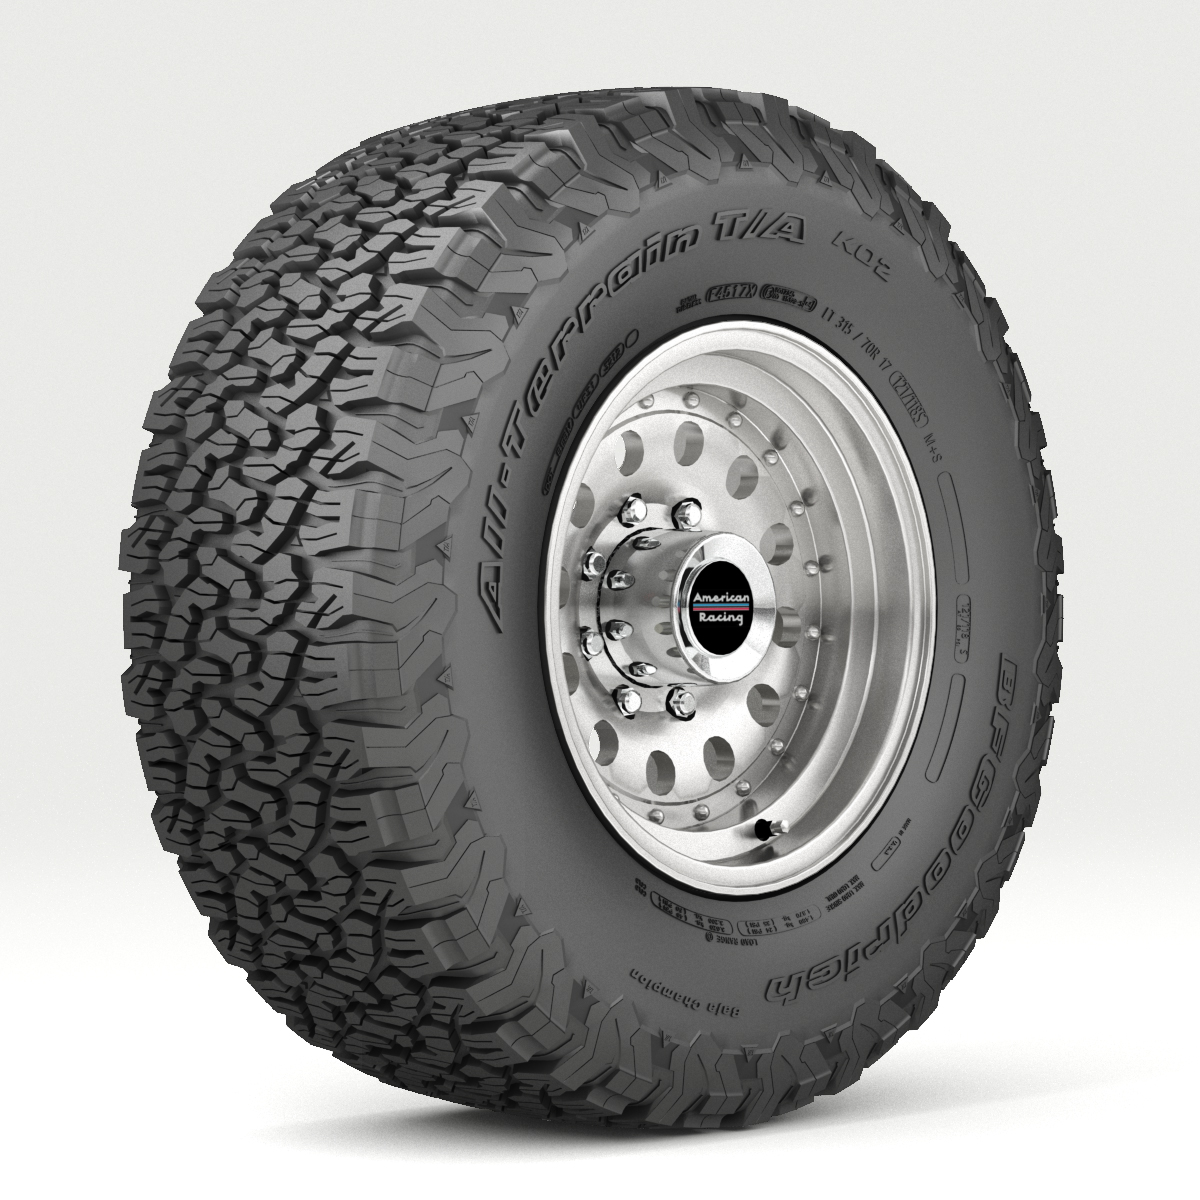 off road wheel and ban 5 3d model 3ds max fbx tga targa icb vda vst pix obj 224470